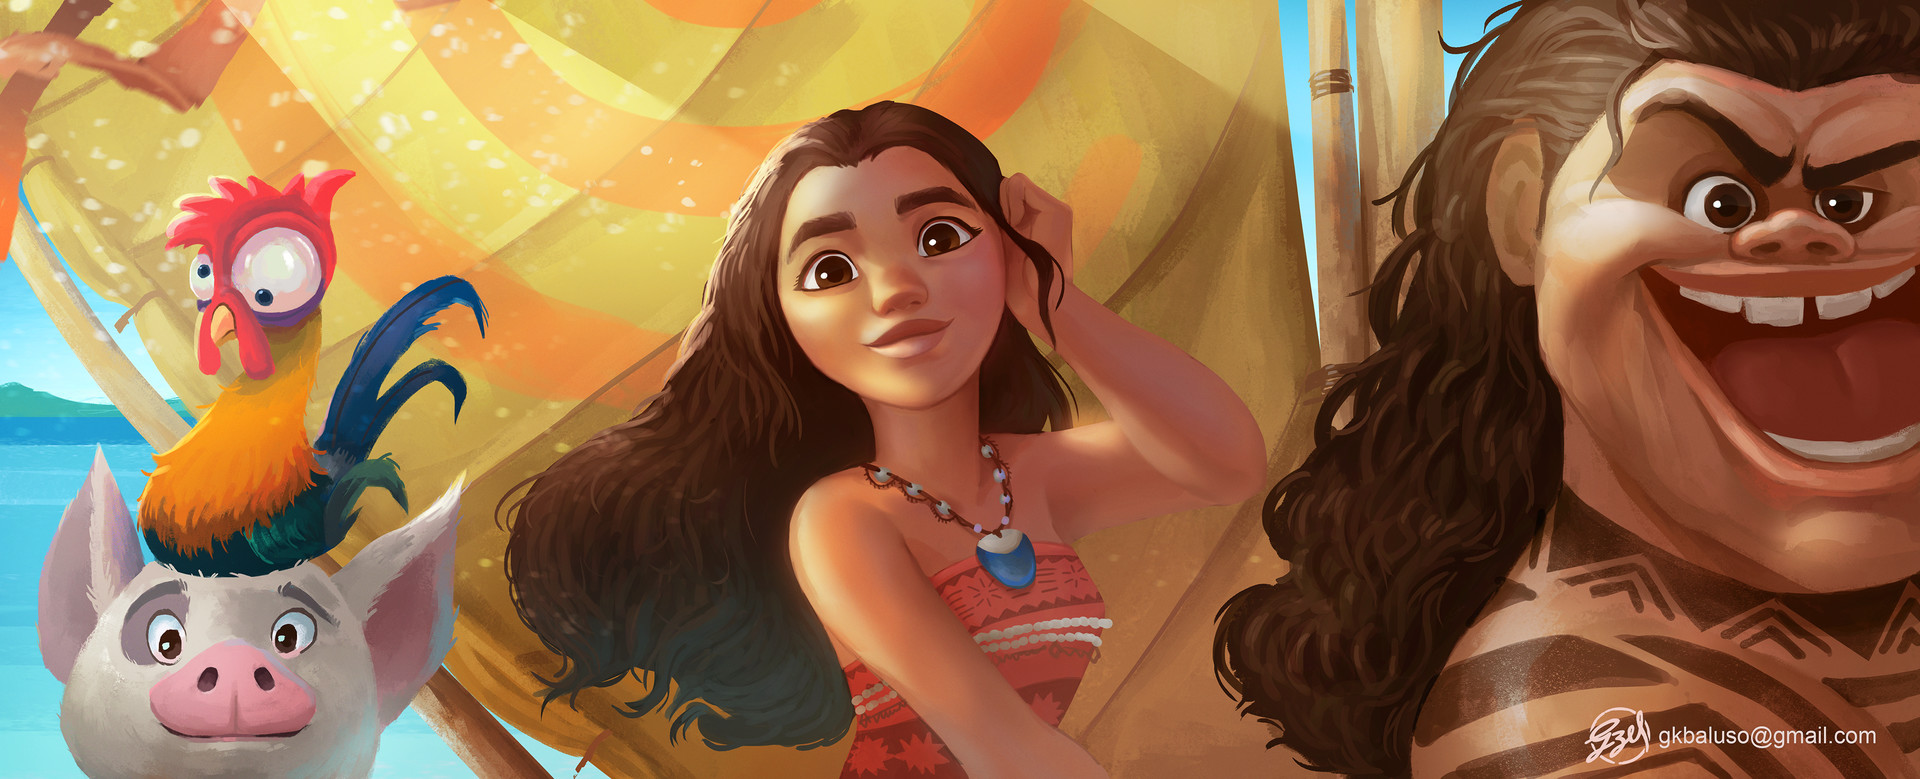 We've watched Moana  and fell in love with all there is to it. <3 Ever since, I've been listening to the soundtrack.